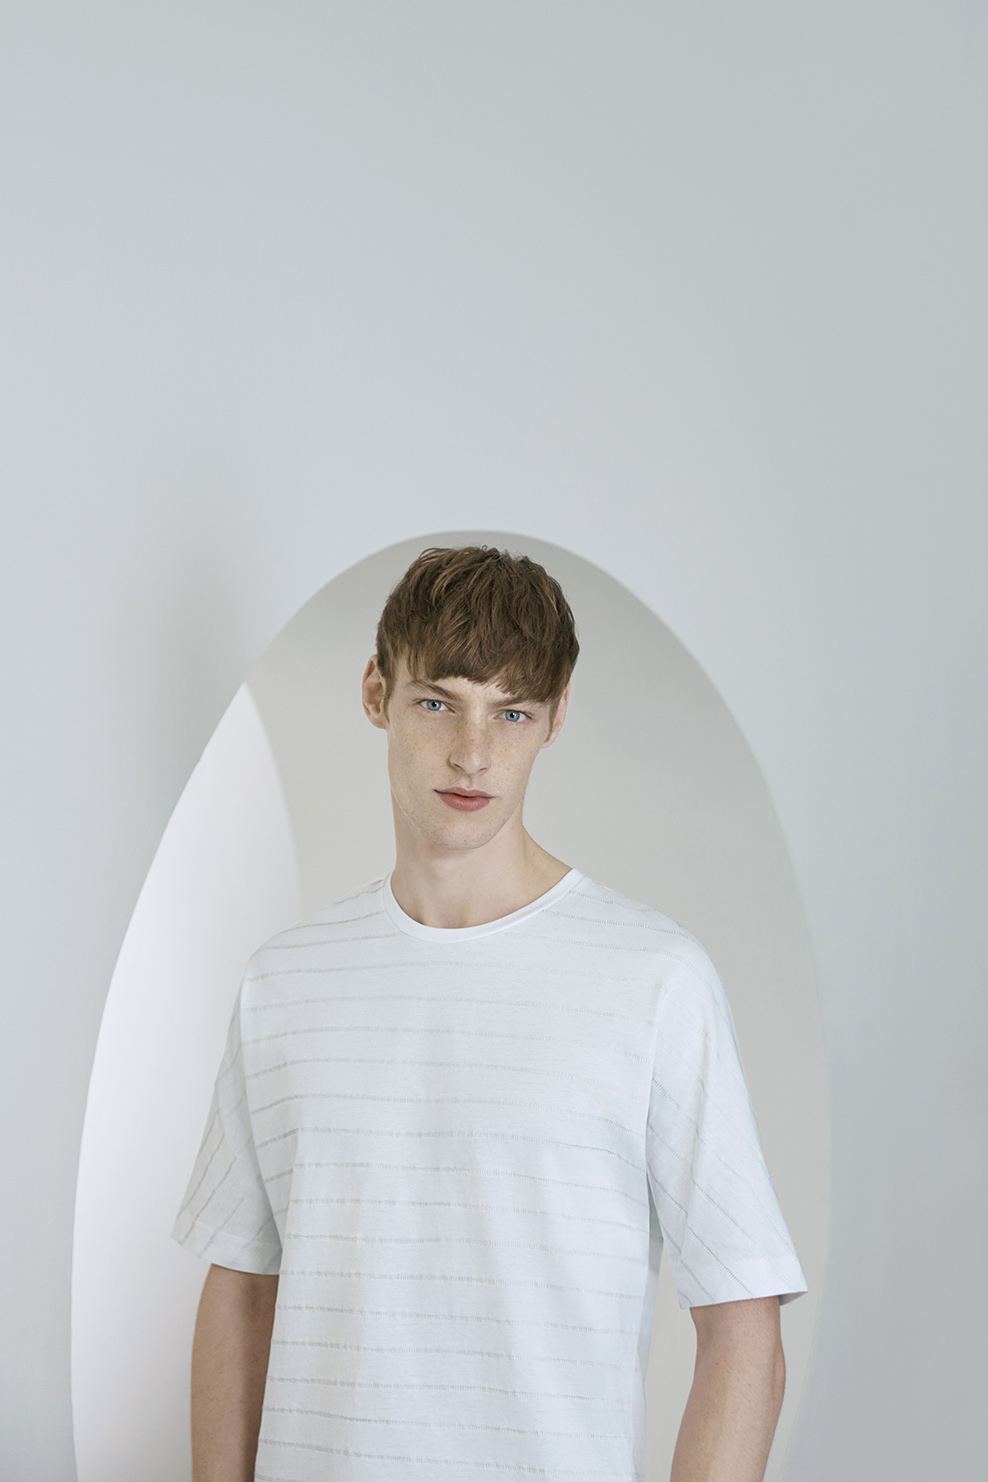 cos-agnes-martin-guggenheim-fw2016-lookbook-mens-womens-5